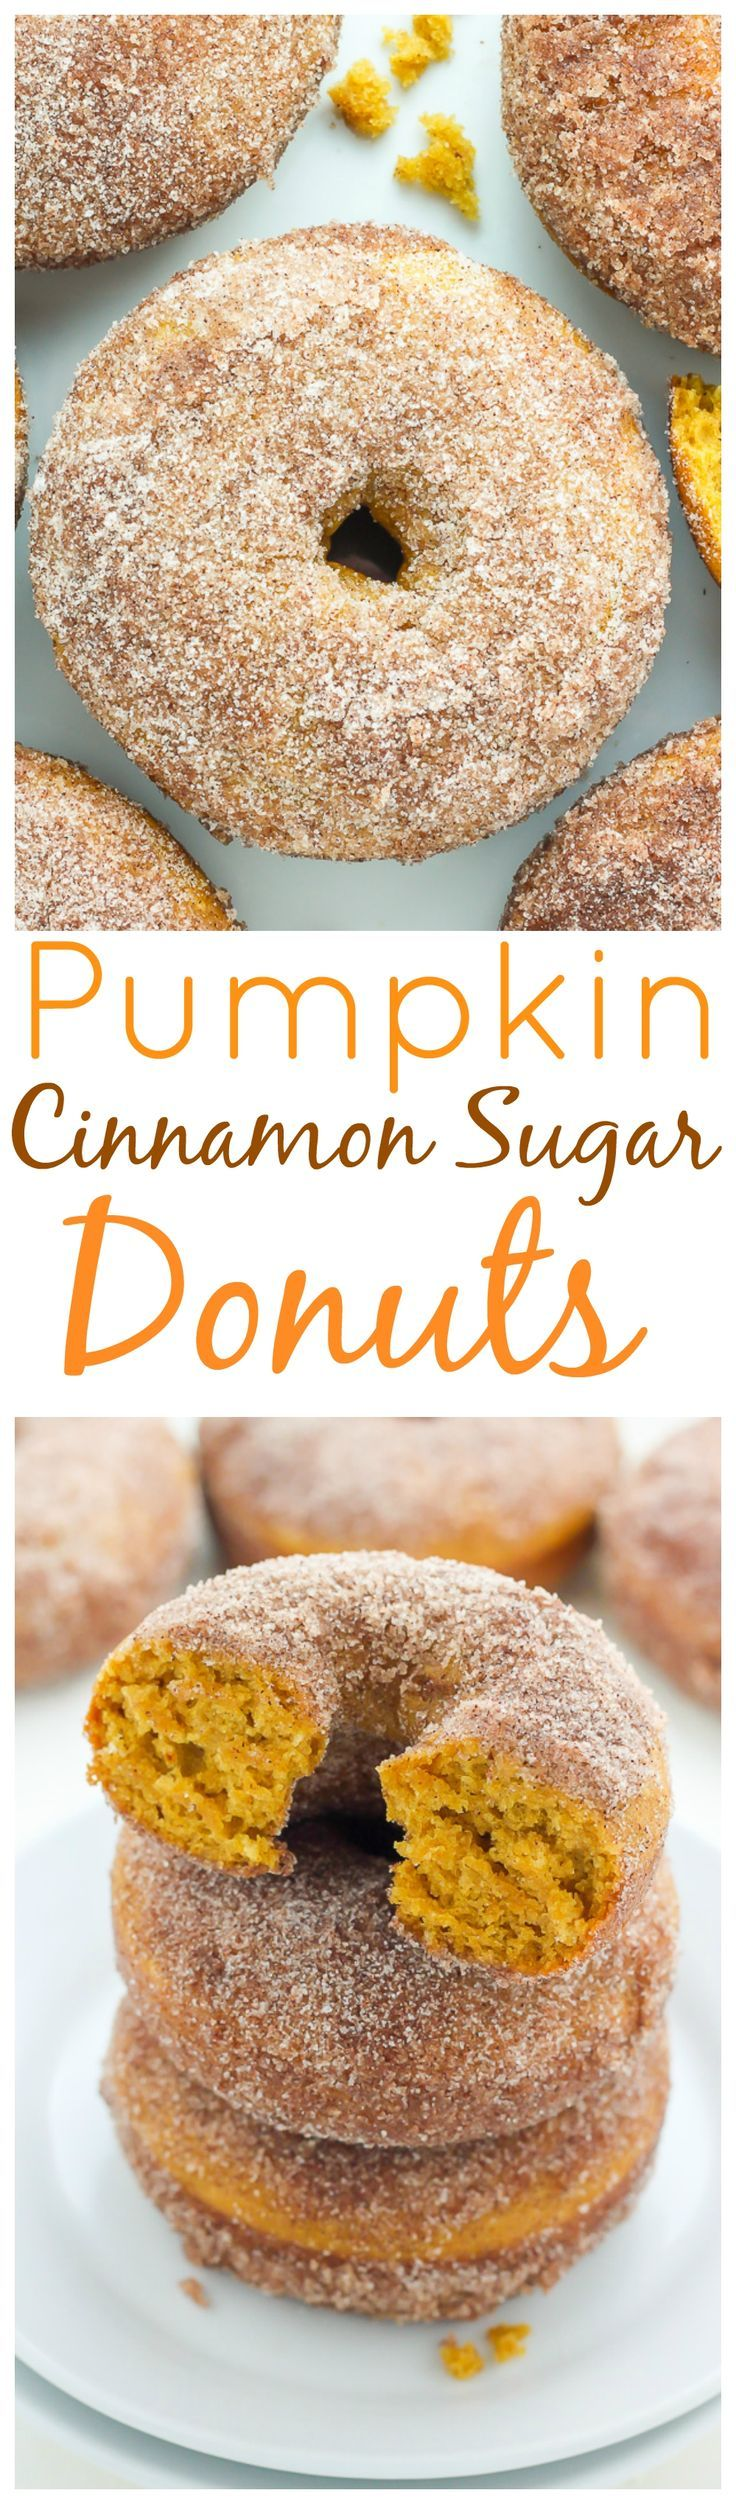 Pumpkin Cinnamon Sugar Donuts (Includes vegan version)